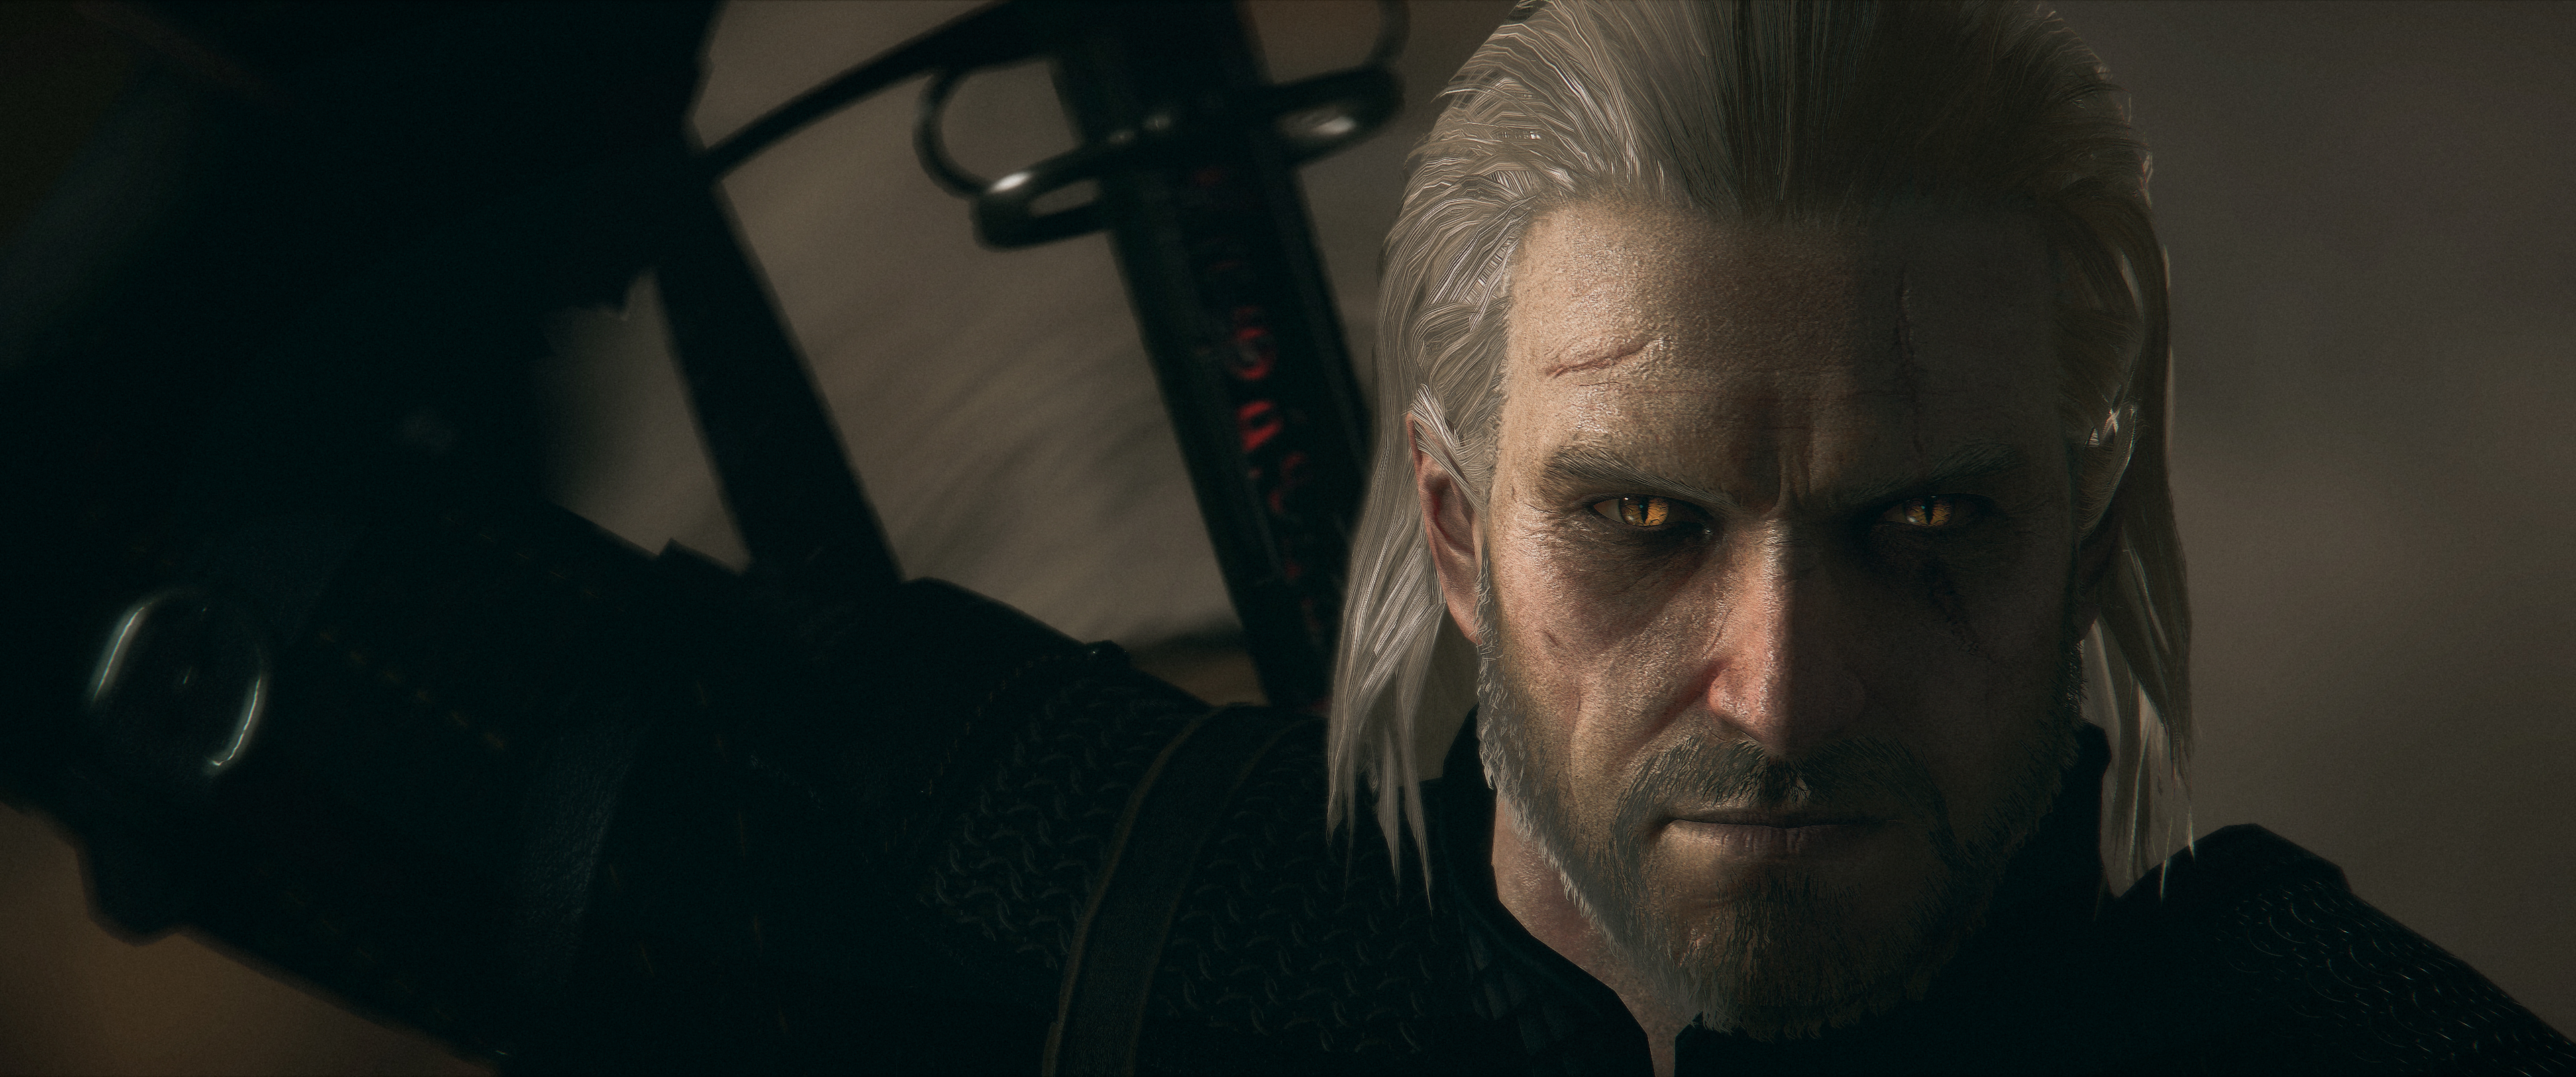 the witcher 3 wild hunt glow 1578851527 - The Witcher 3 Wild Hunt Glow - The Witcher 3 Wild Hunt Glow 4k wallpaper